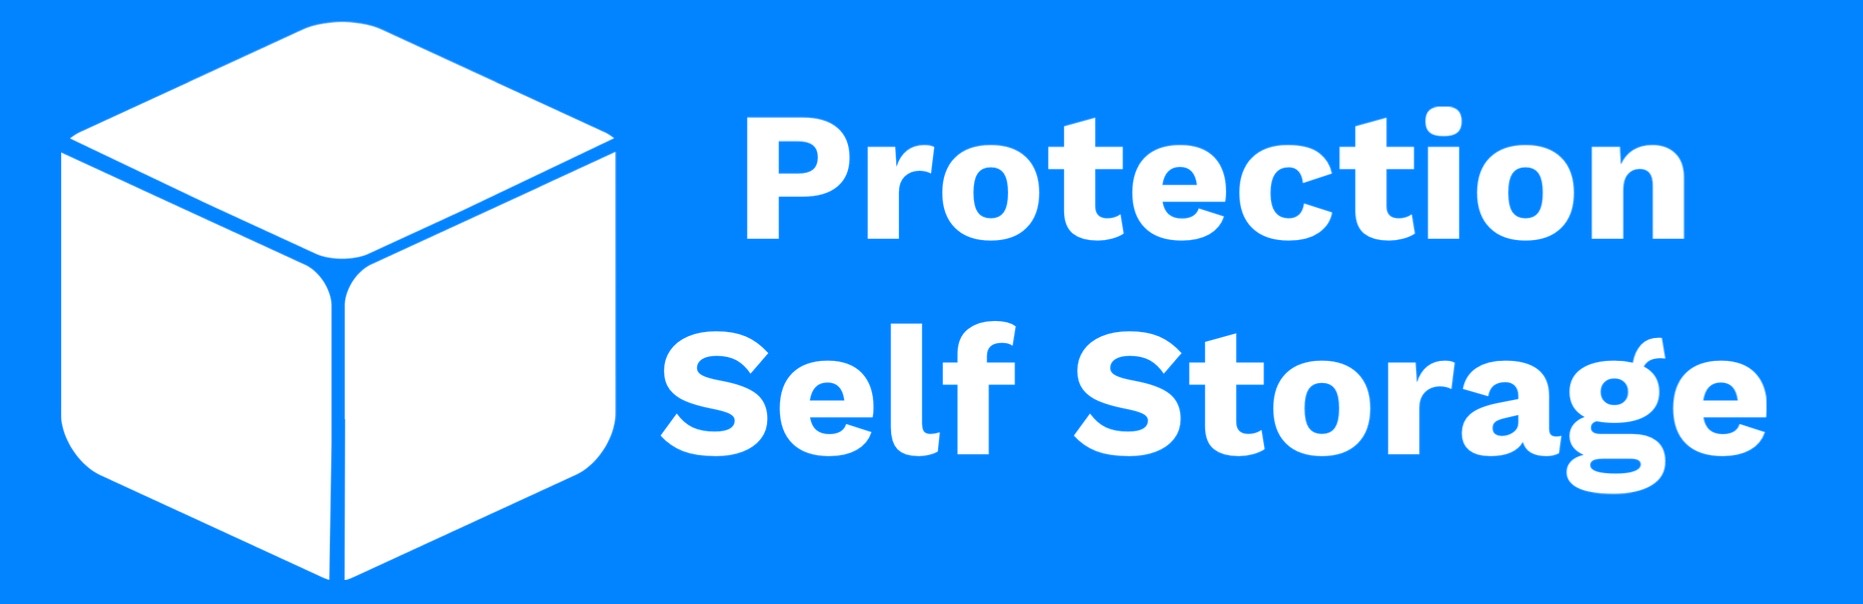 Protection Self Storage